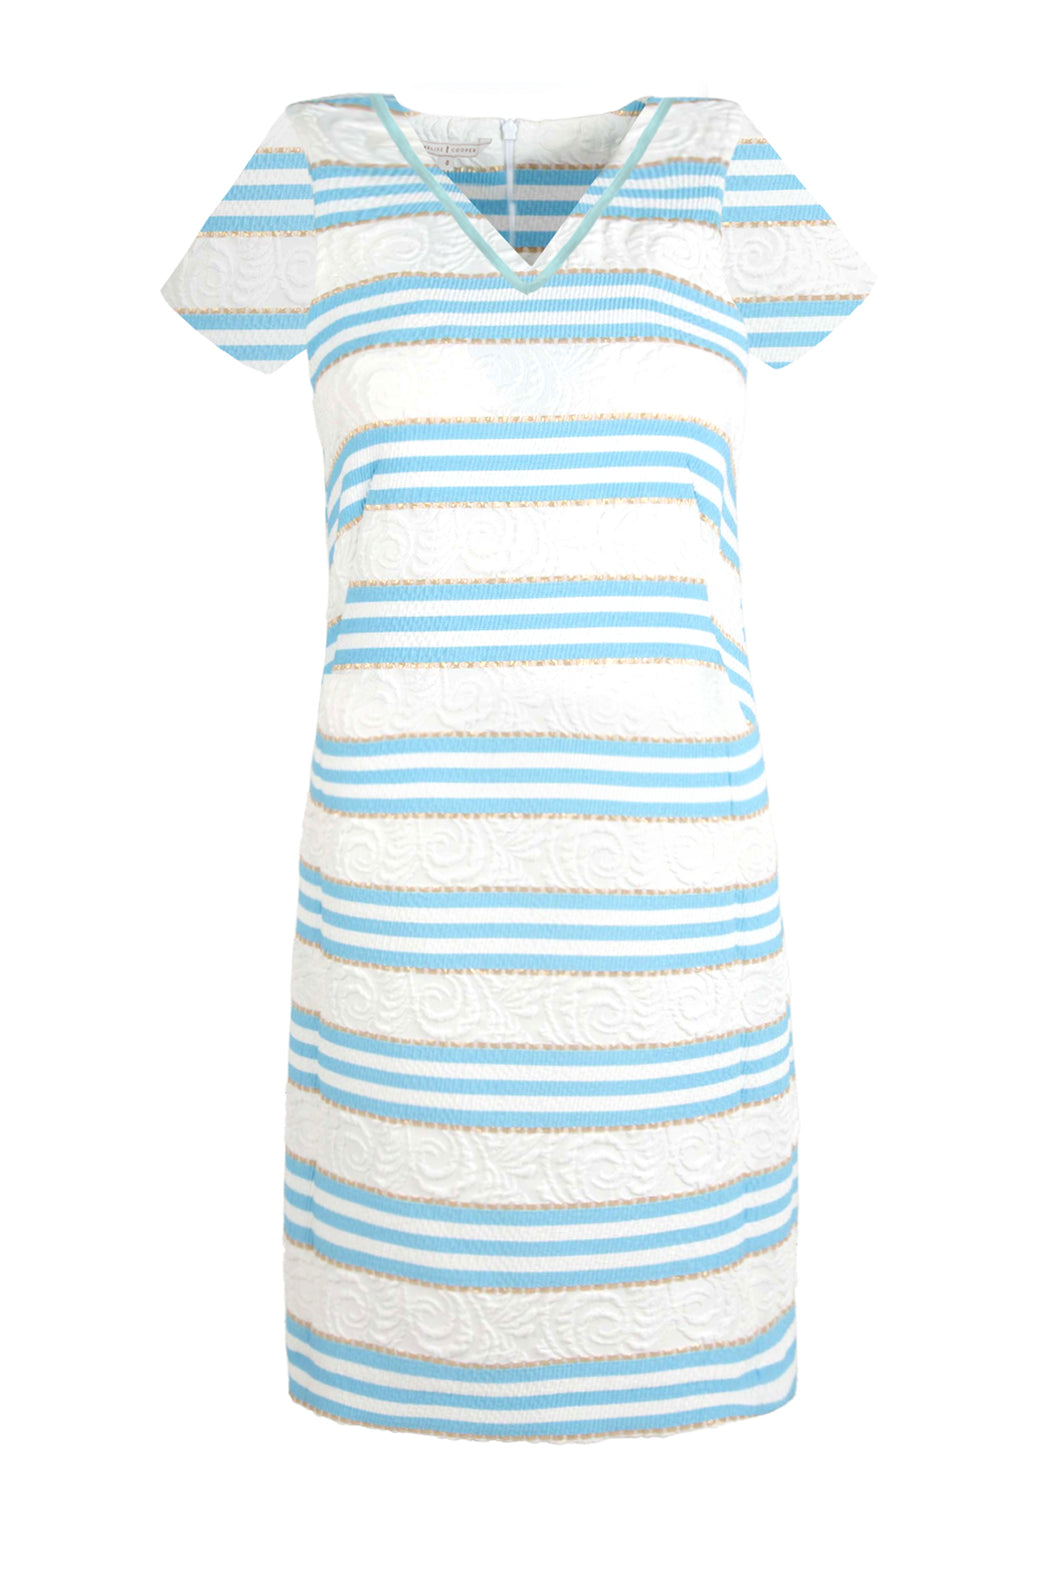 Trelise Cooper A Little Dress Conversation Dress - Blue  Stripe